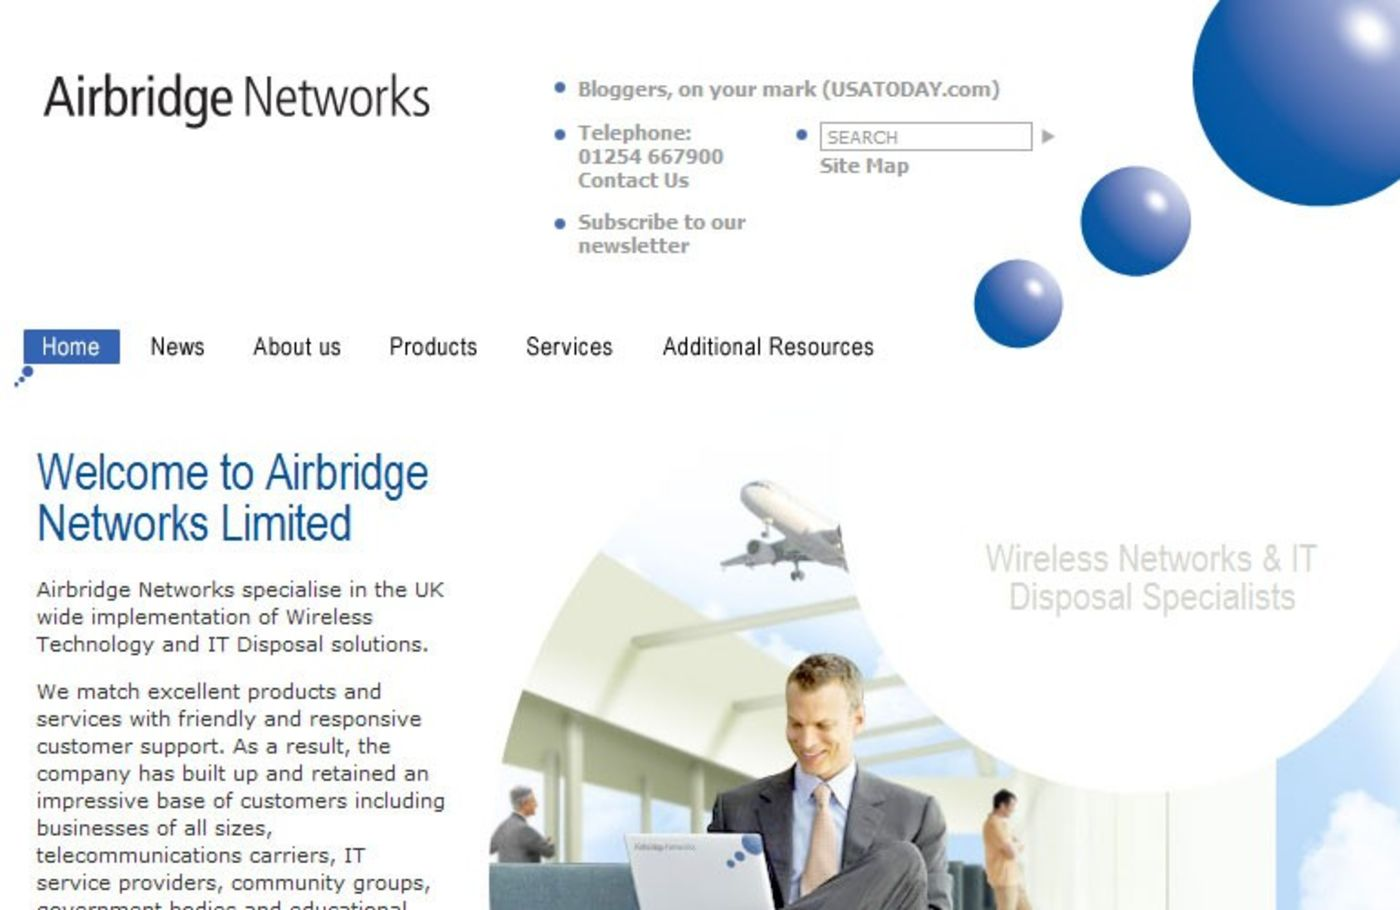 Airbridge Networks Homepage header - Airbridge